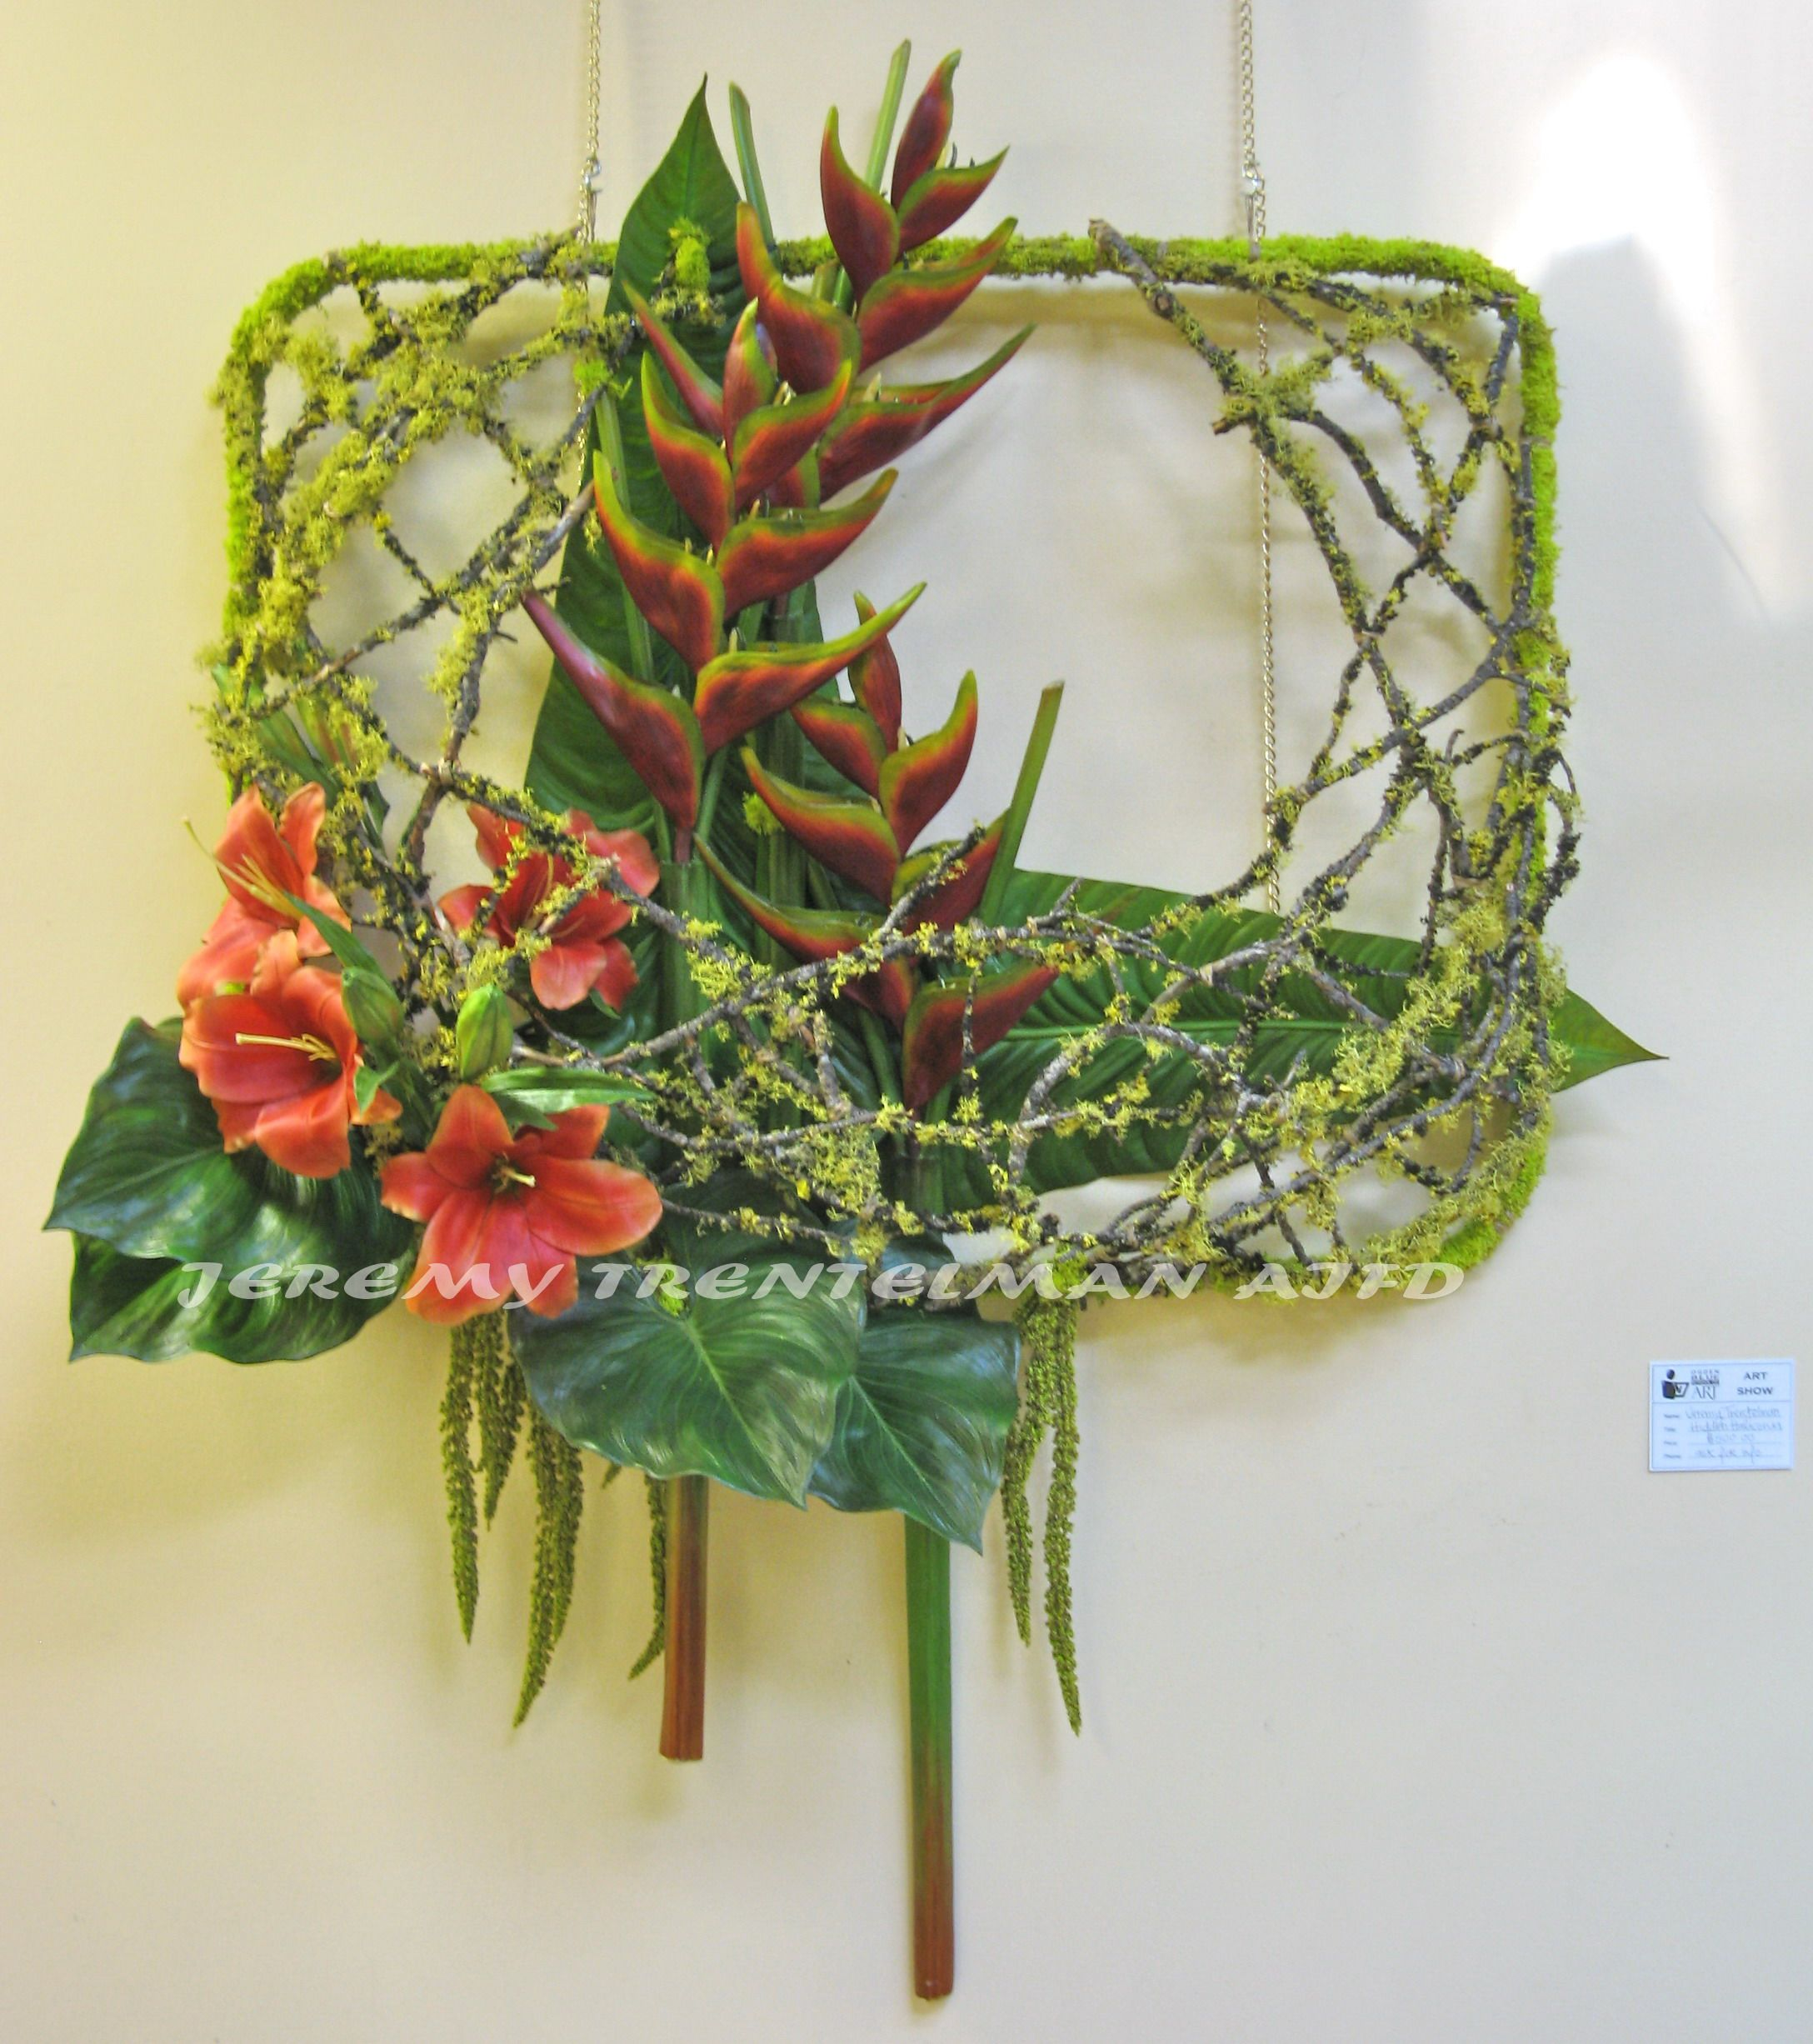 "Hidden Haliconia: 36""x48"". The frame is a repurposed military jeep window that has been covered in mosses. The ""nest"" was created with mossy branches and is 12"" deep creating a pocket for the floral arrangement to sit in. Upright haliconia, lilies, and tropical foliage. This was one of several pieces on exhibit at my last art show."